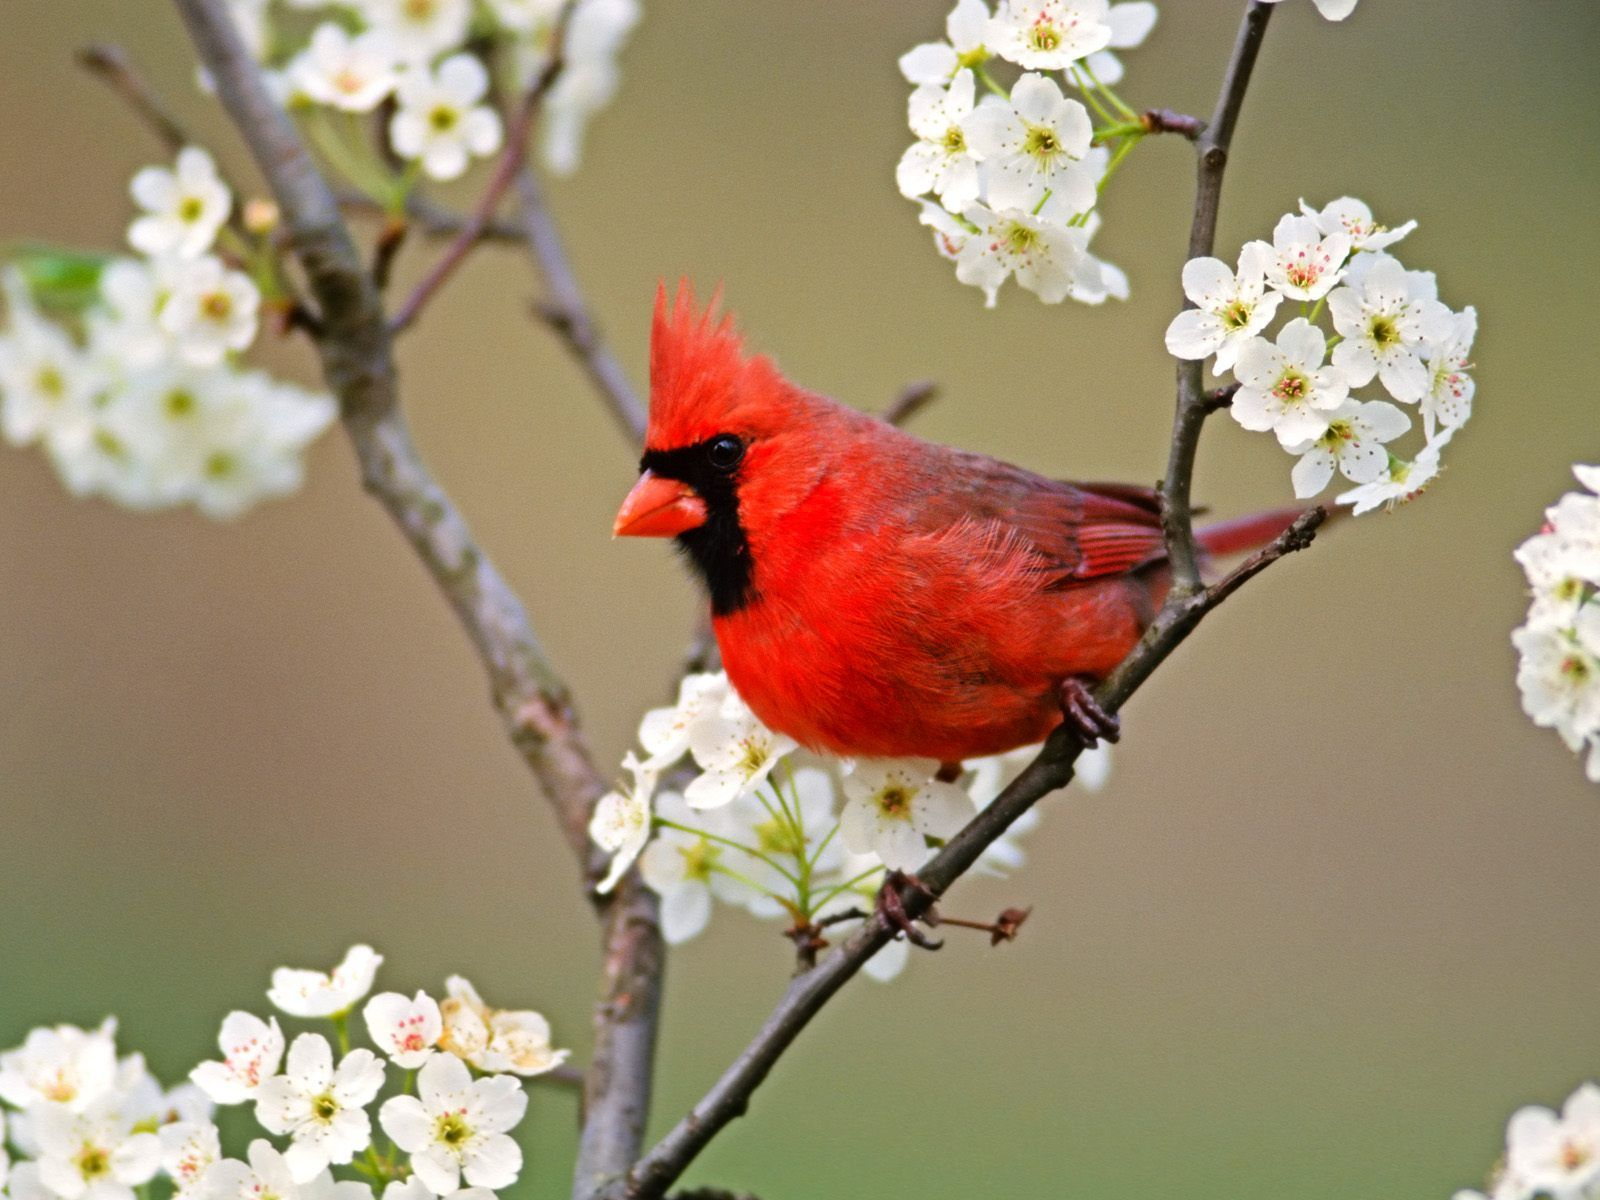 flowers for flower lovers Flowers and birds beautiful wallpapers 1600x1200